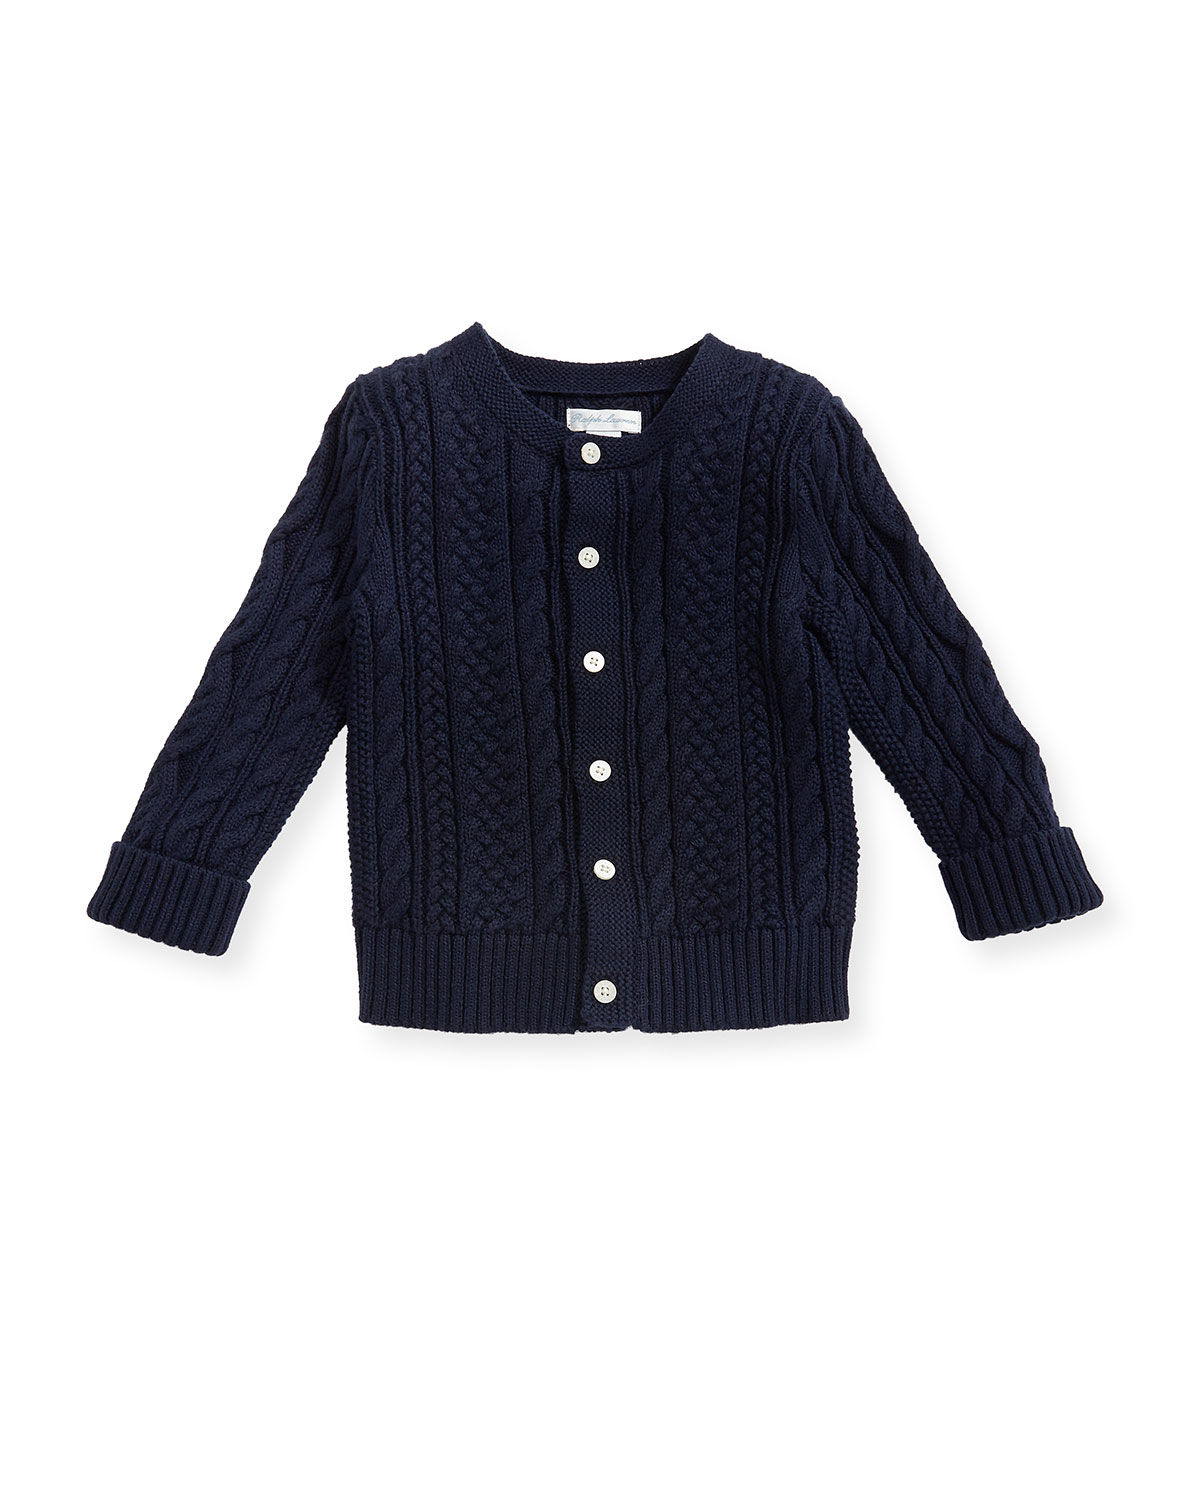 Soft Pearl Cotton CableKnit Cardigan Navy 624 Months